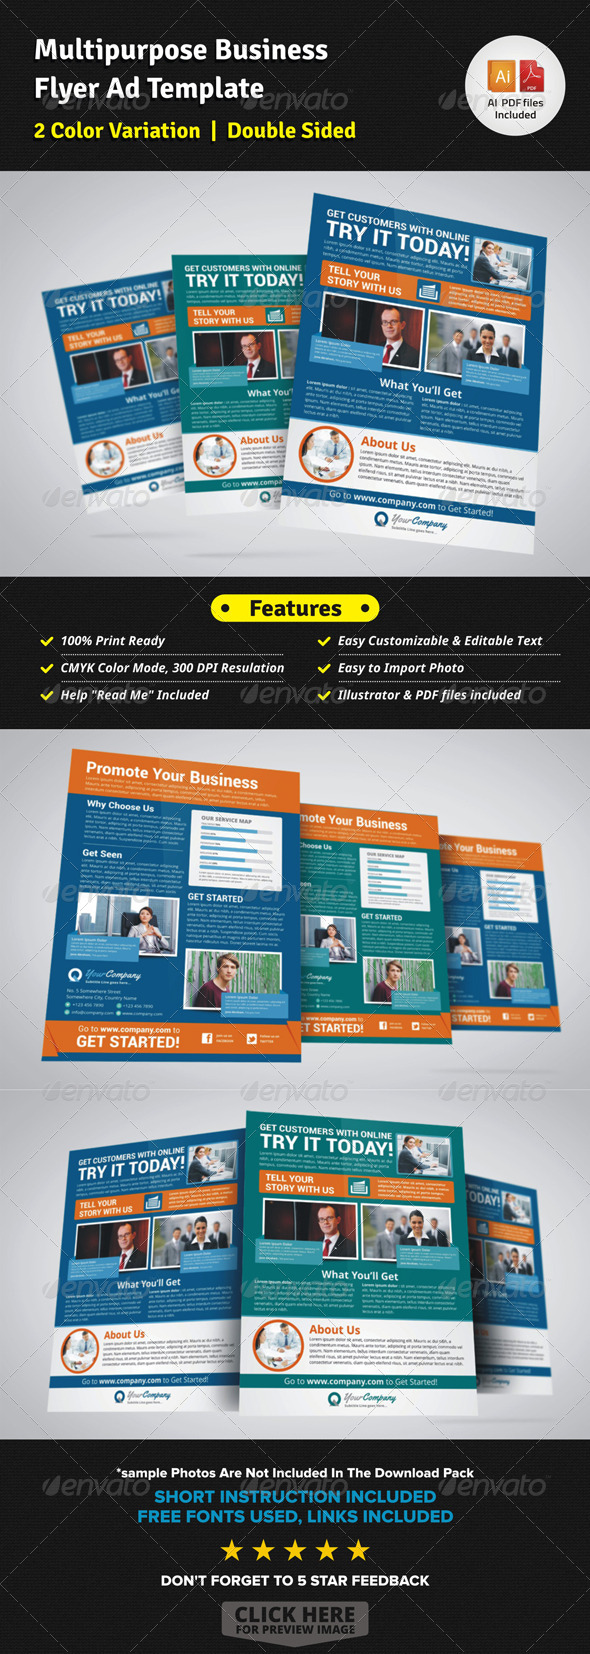 Multipurpose Business Flyer Ad Template